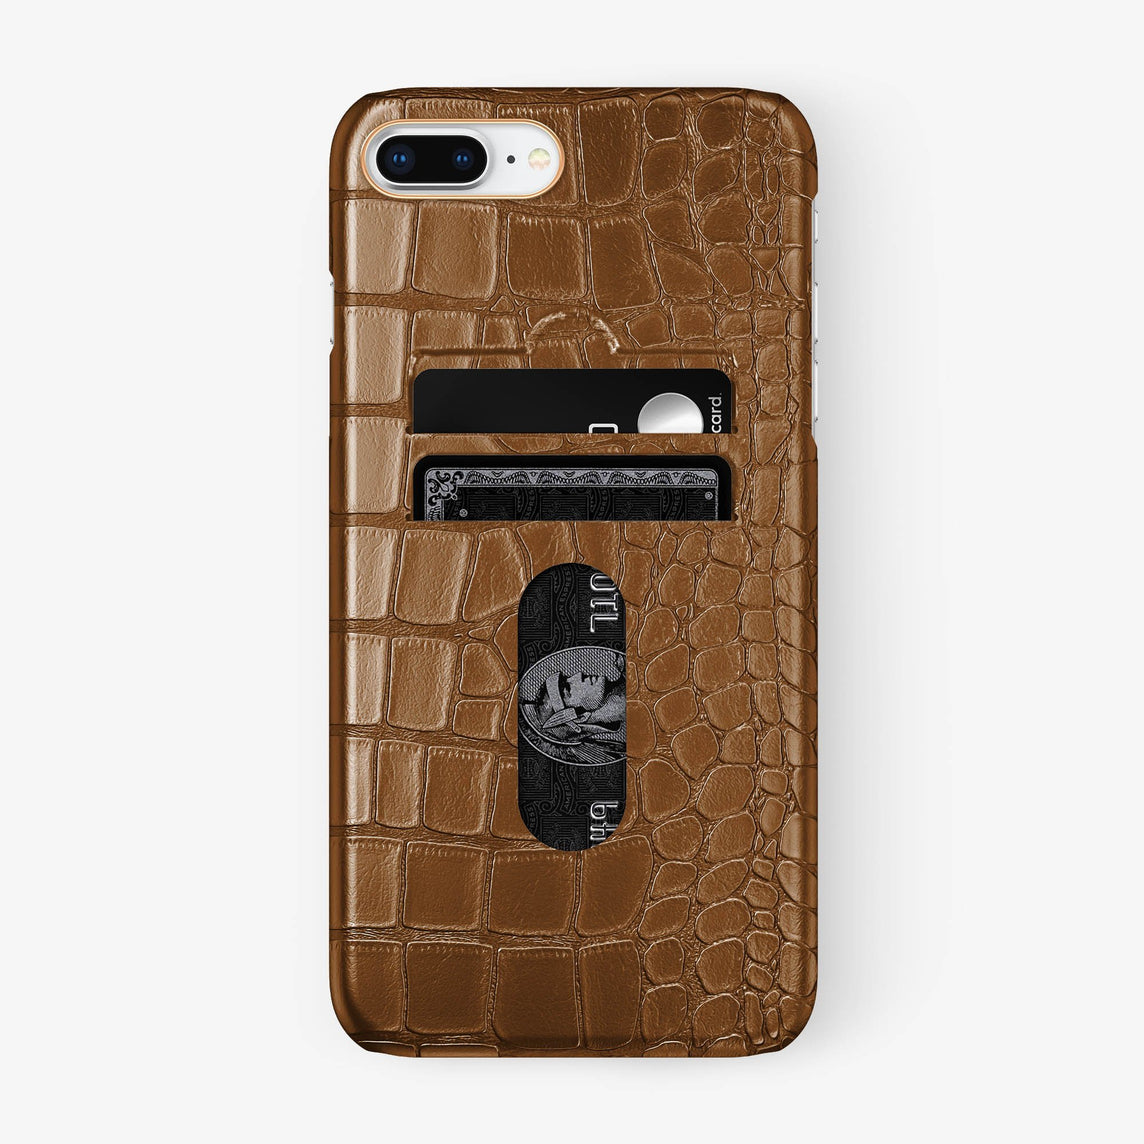 Alligator Card Holder Case iPhone 7/8 Plus | Cognac - Rose Gold - Hadoro